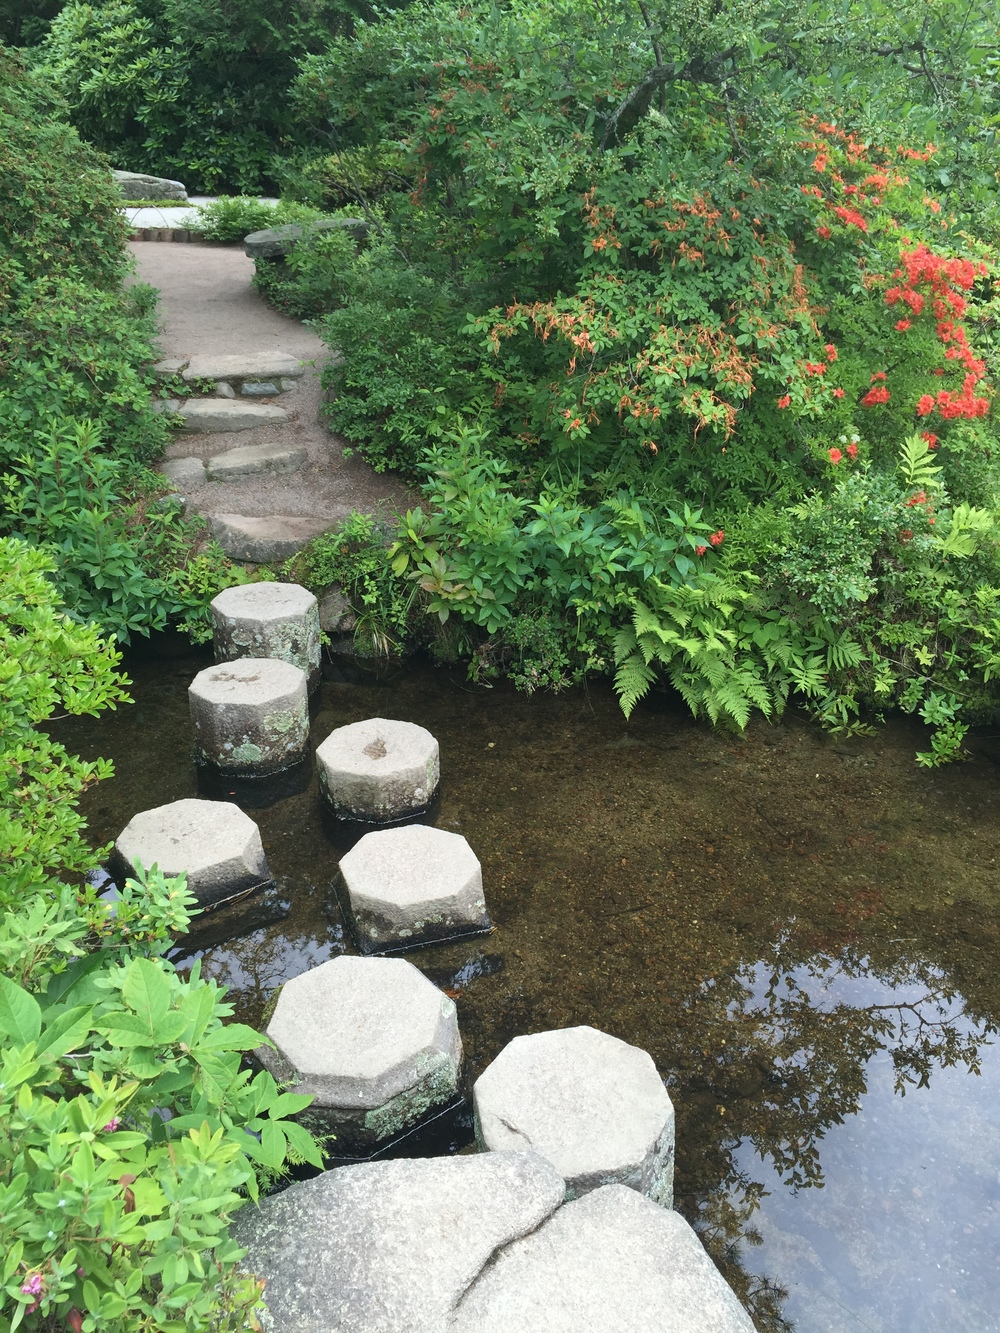 Stepping stones in the Azalea Garden.